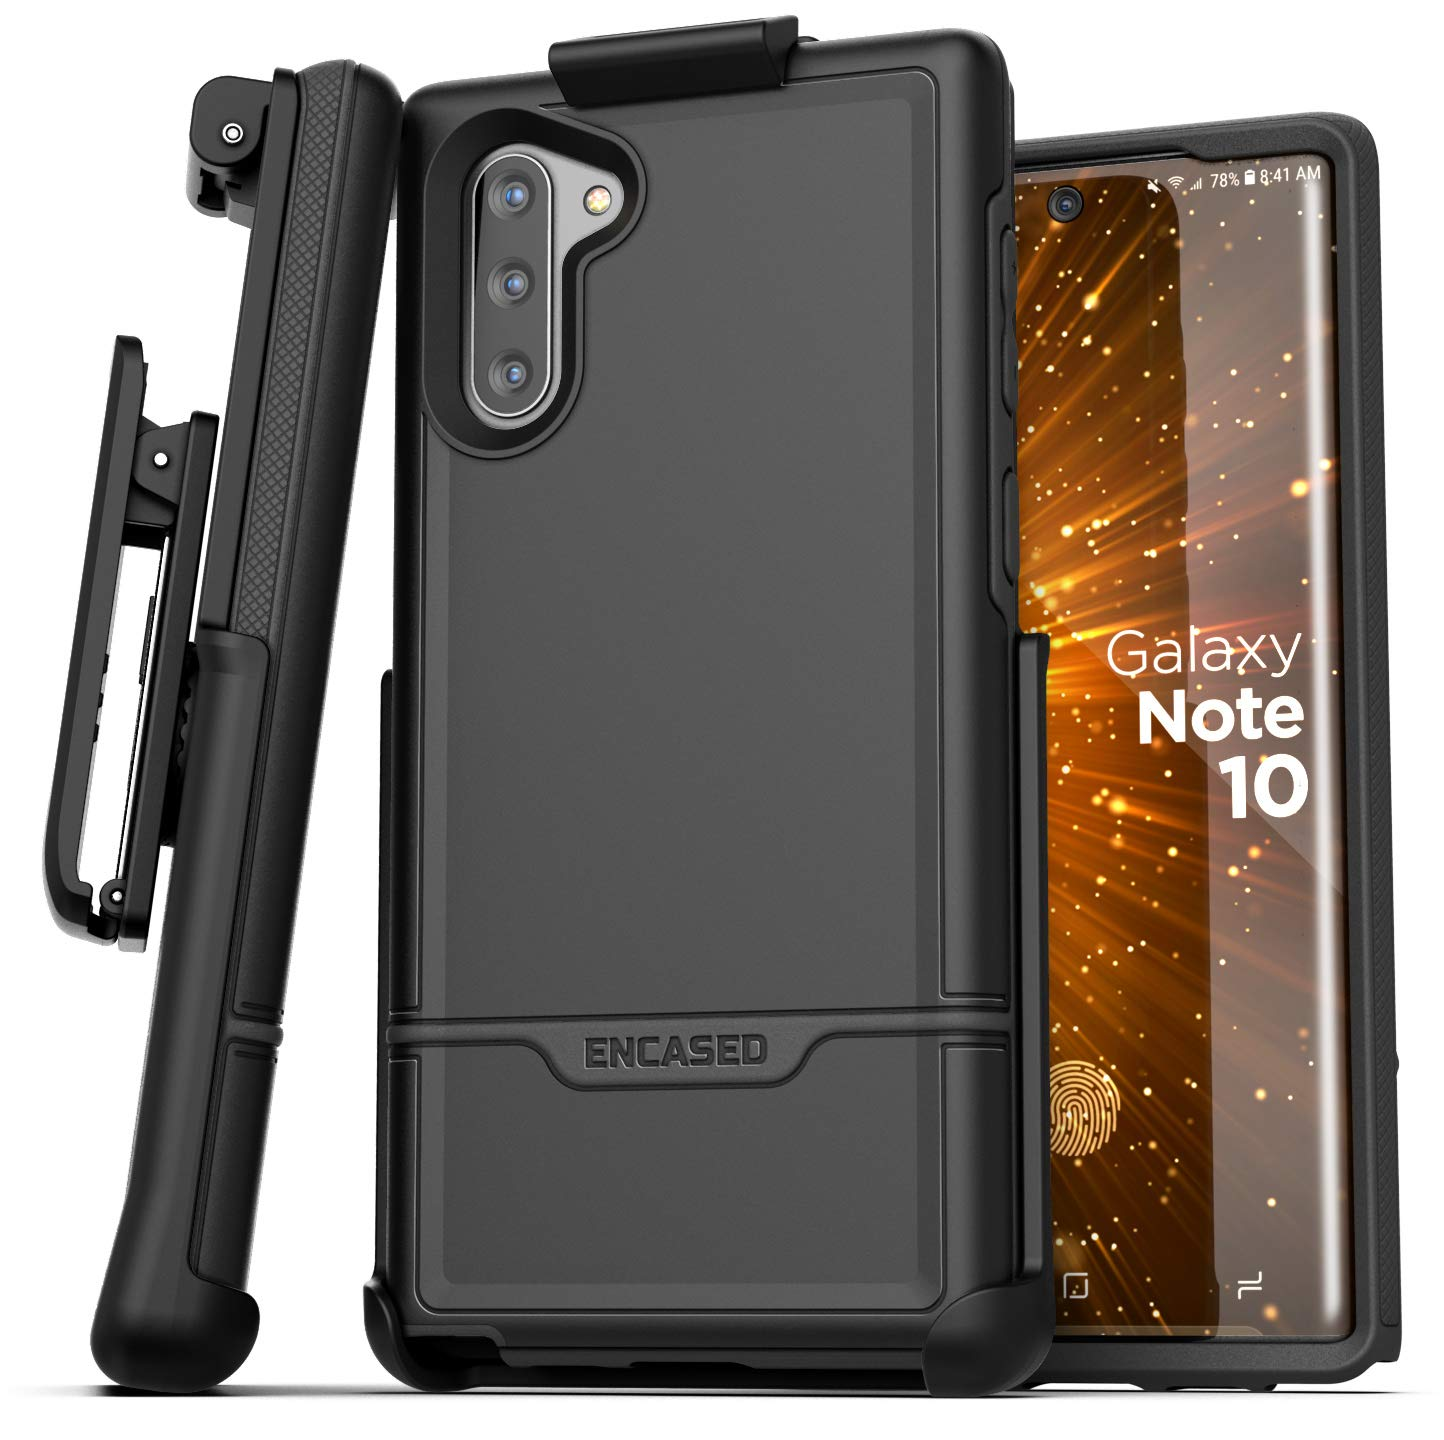 Encased Galaxy Note 10 Belt Clip Protective Holster Case (2019 Rebel Armor) Heavy Duty Rugged Full Body Cover w/Holder for Samsung Note 10 (Black) by Encased